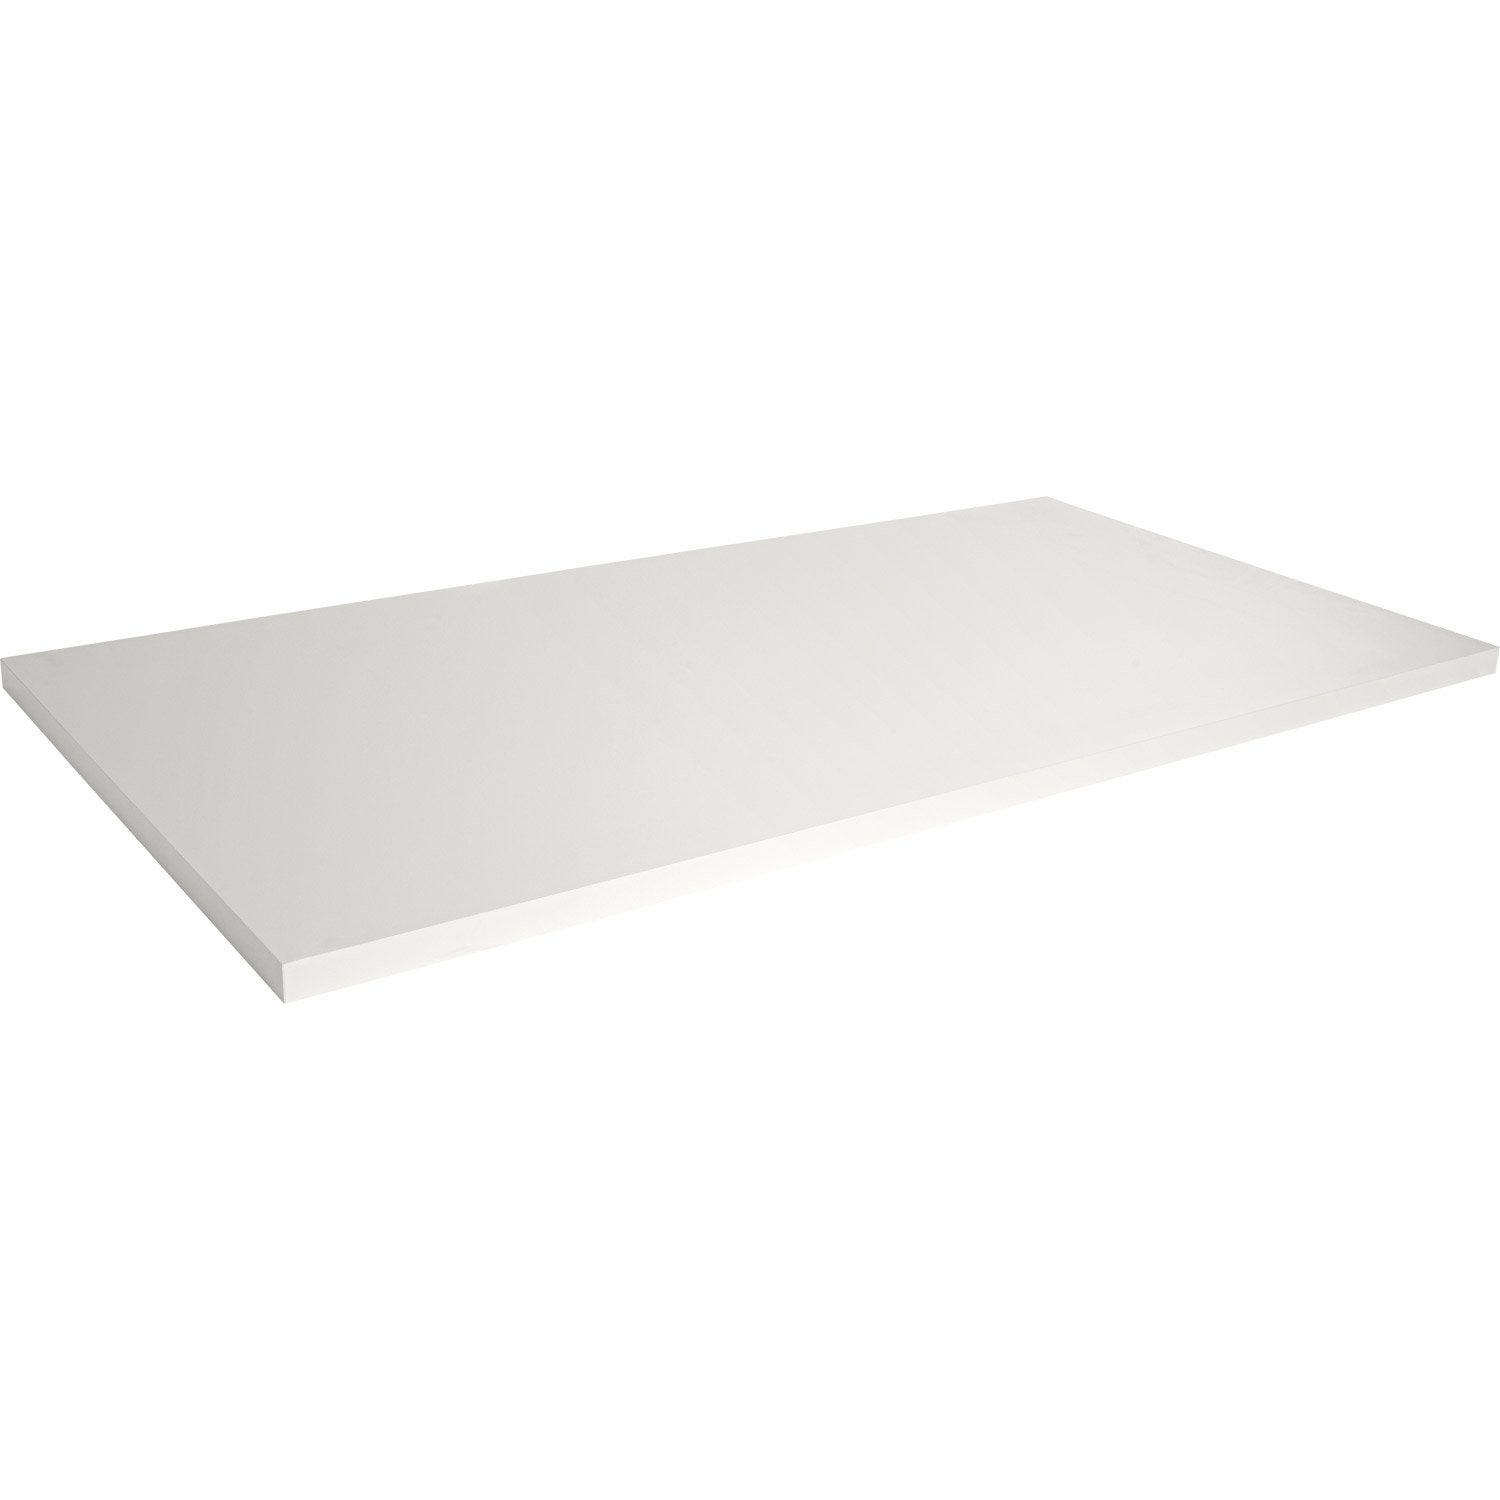 Plateau De Table Structure Alv Olaire Blanc X